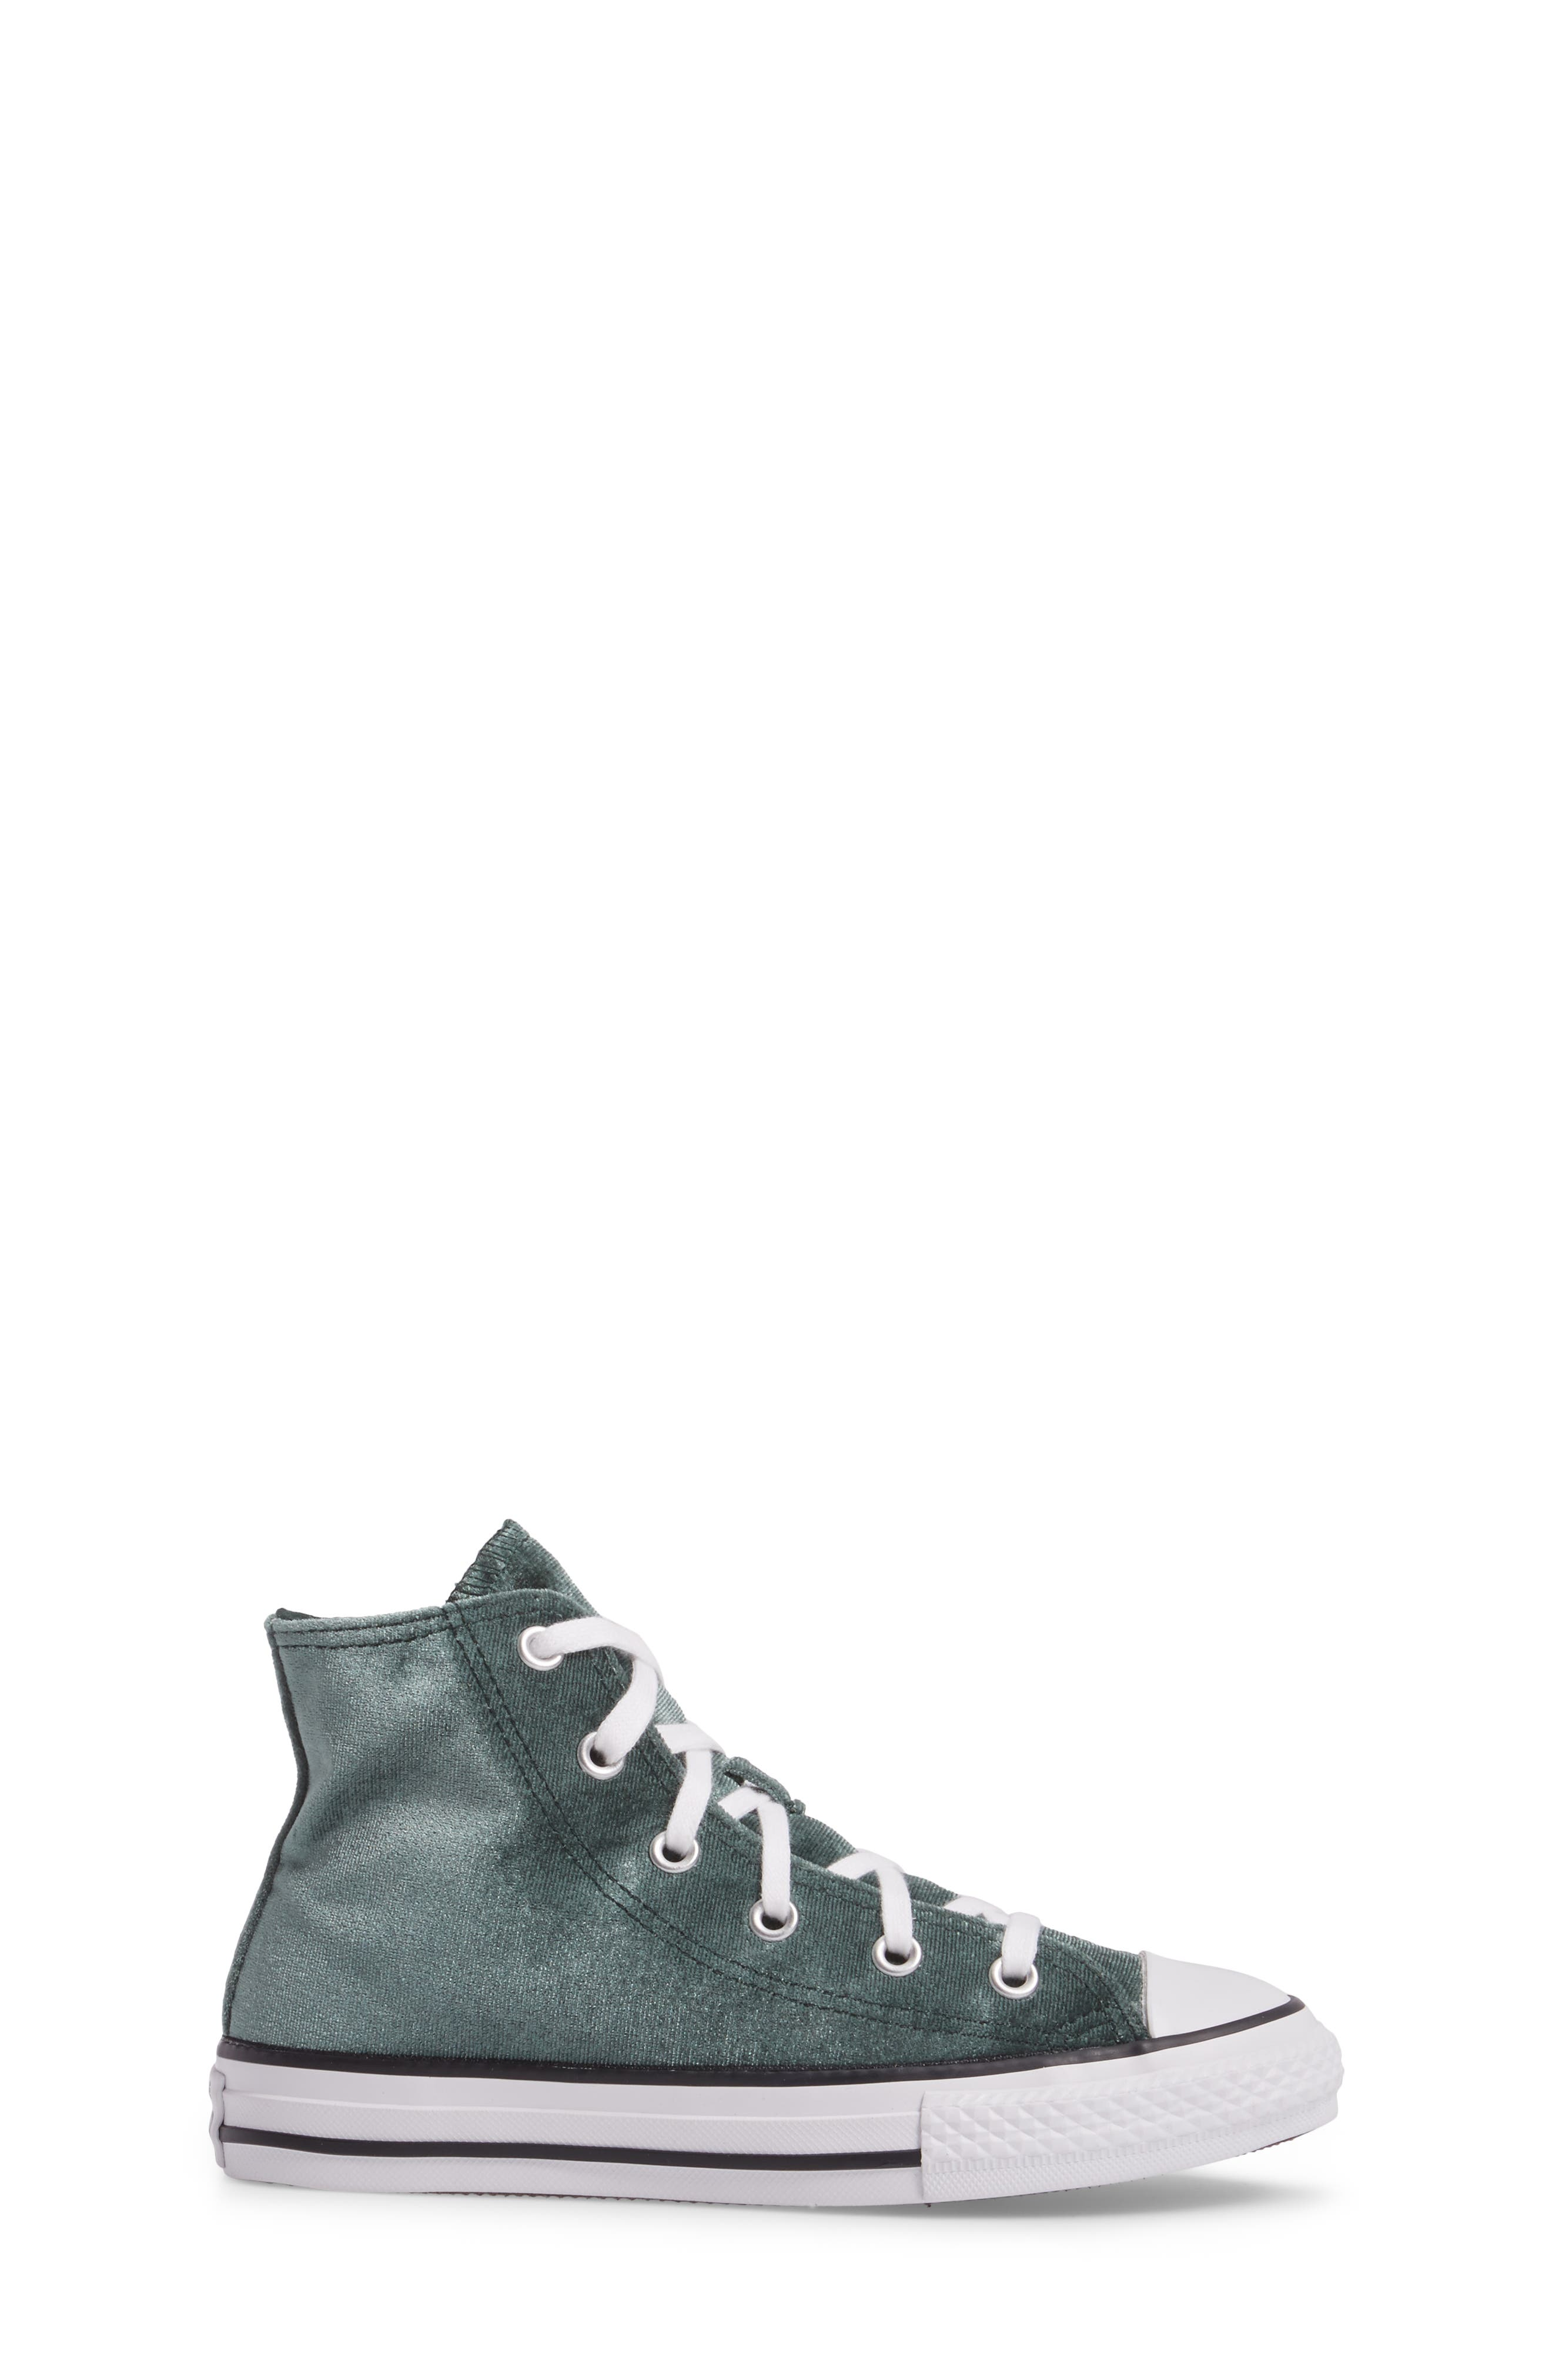 Chuck Taylor<sup>®</sup> All Star<sup>®</sup> Velvet High Top Sneaker,                             Alternate thumbnail 3, color,                             300